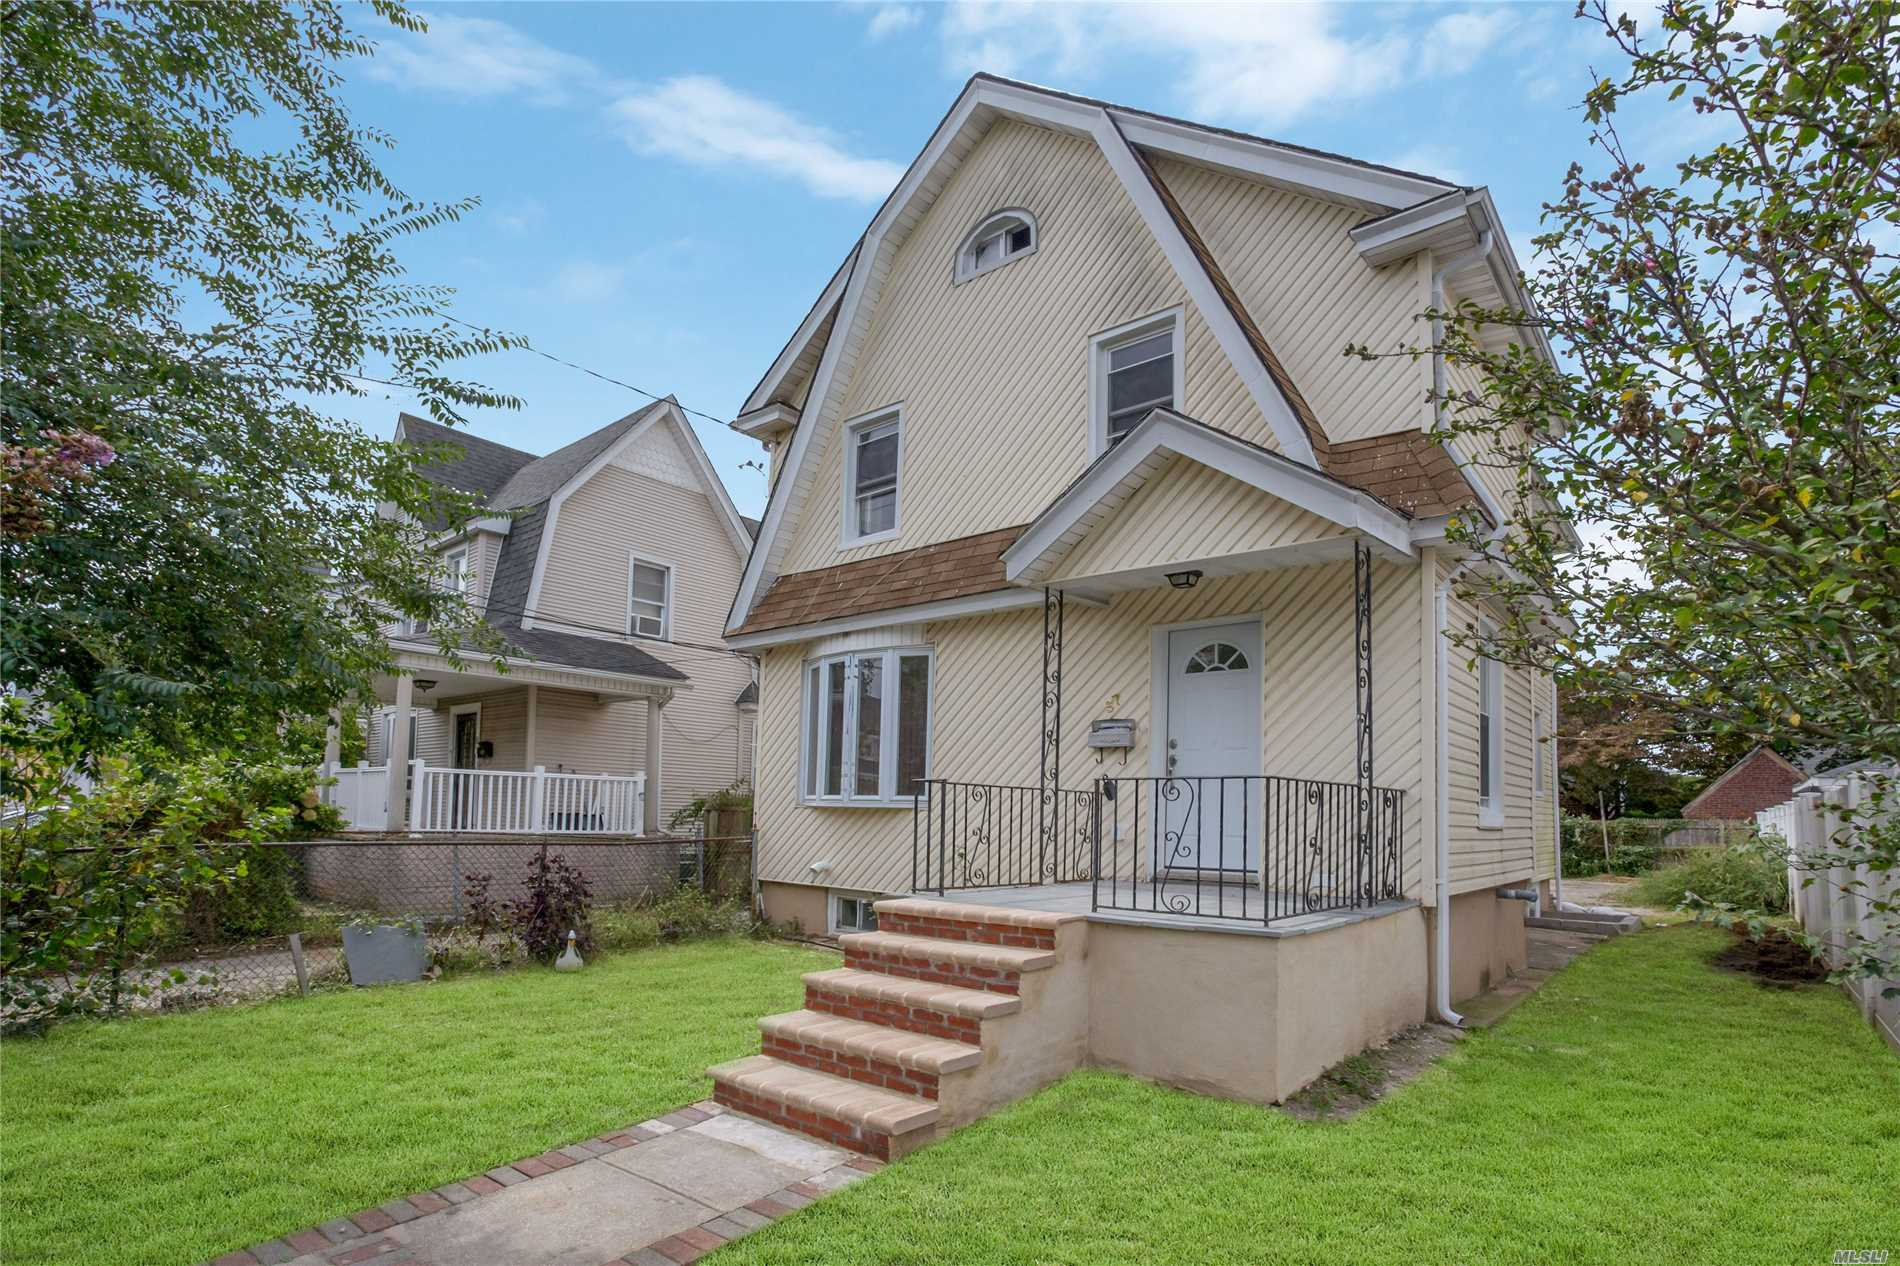 Hempstead. Like New, New Windows, New Roof, New Boiler, New Hot Water Tank, New Kitchen, Bathroom, Appliances, Huge Living Room, Dining Room, Open Light And Airy, Hardwood Floors Throughout, Separate Entrance To Basement.